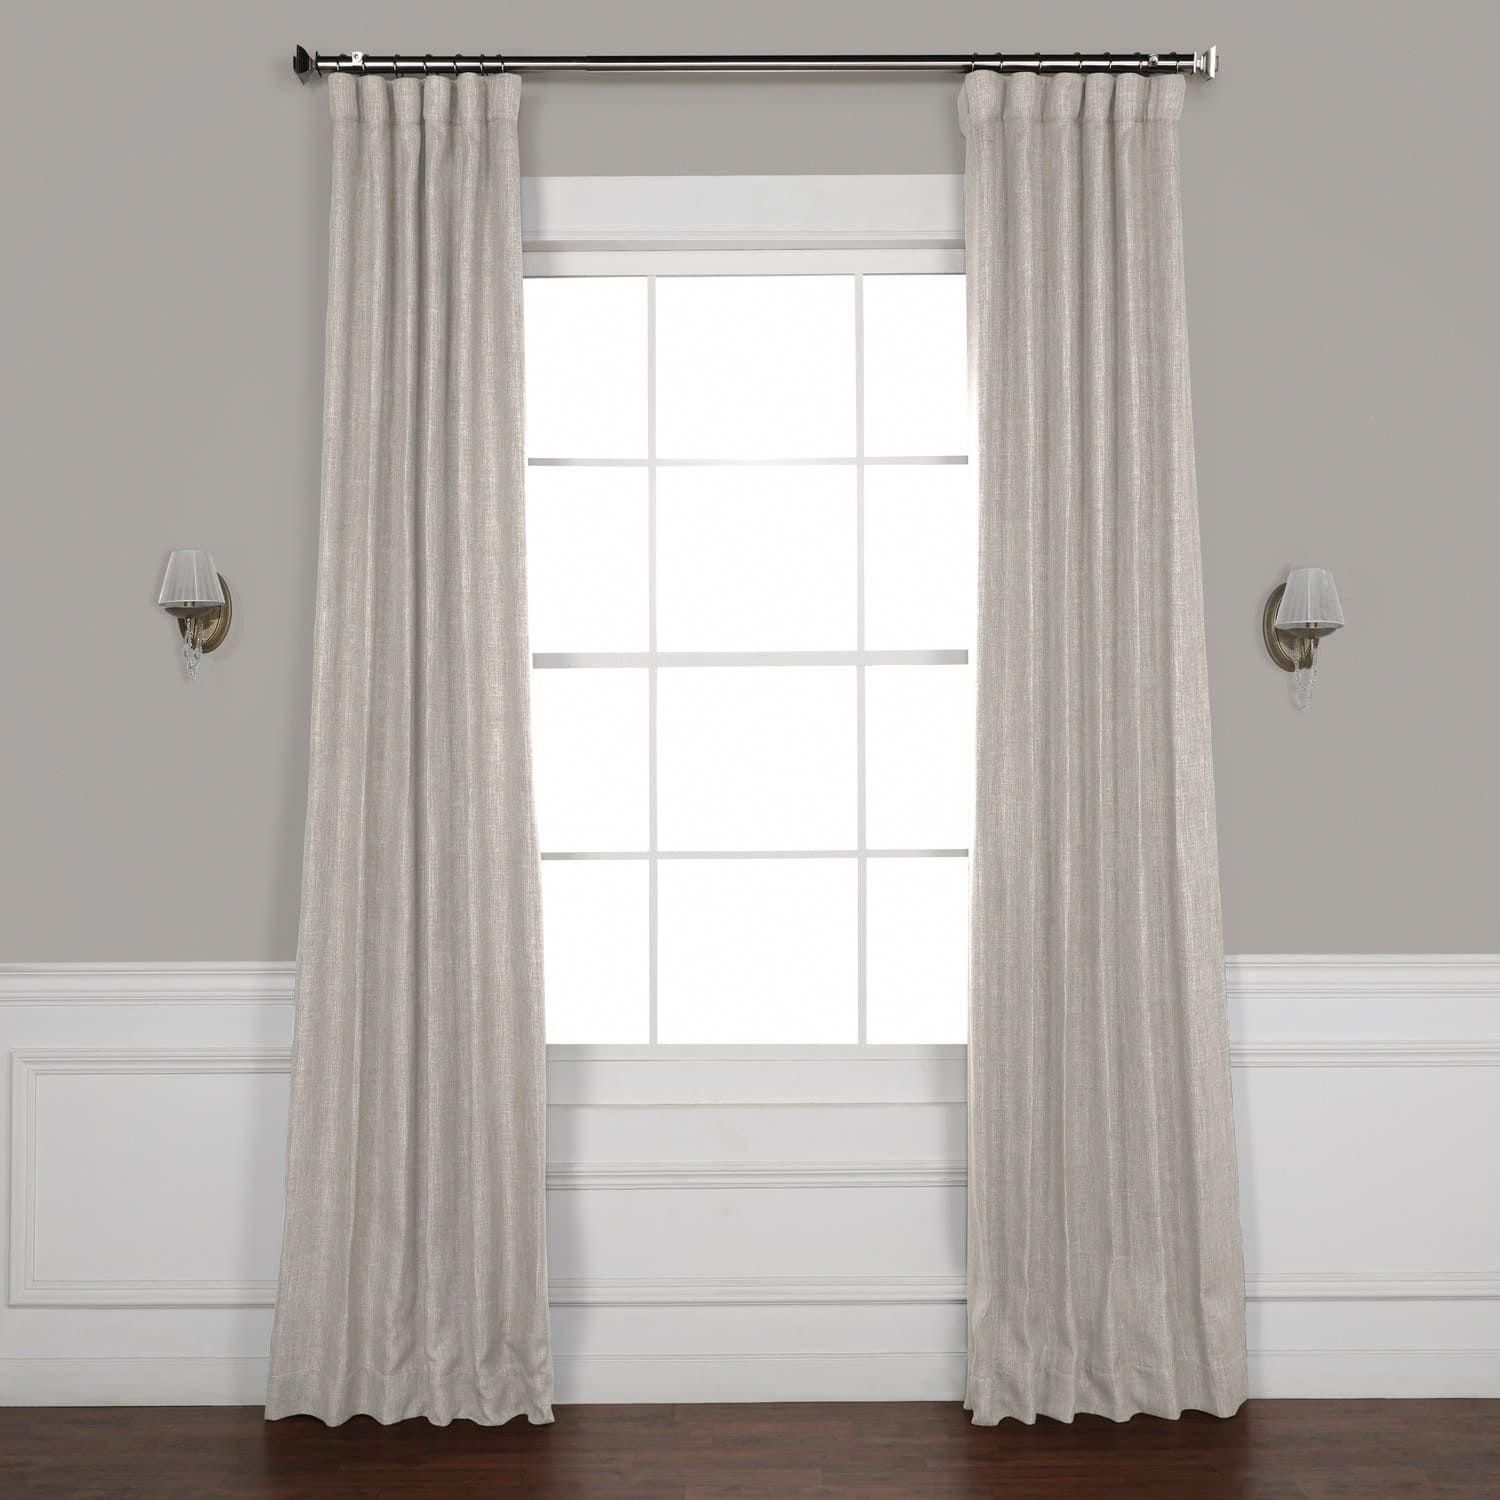 Exclusive Fabrics Faux Linen Blackout Curtain 50 X 108 108 Inches Clay Beige Curtains Panel Curtains Curtains Wall Decor Bedroom